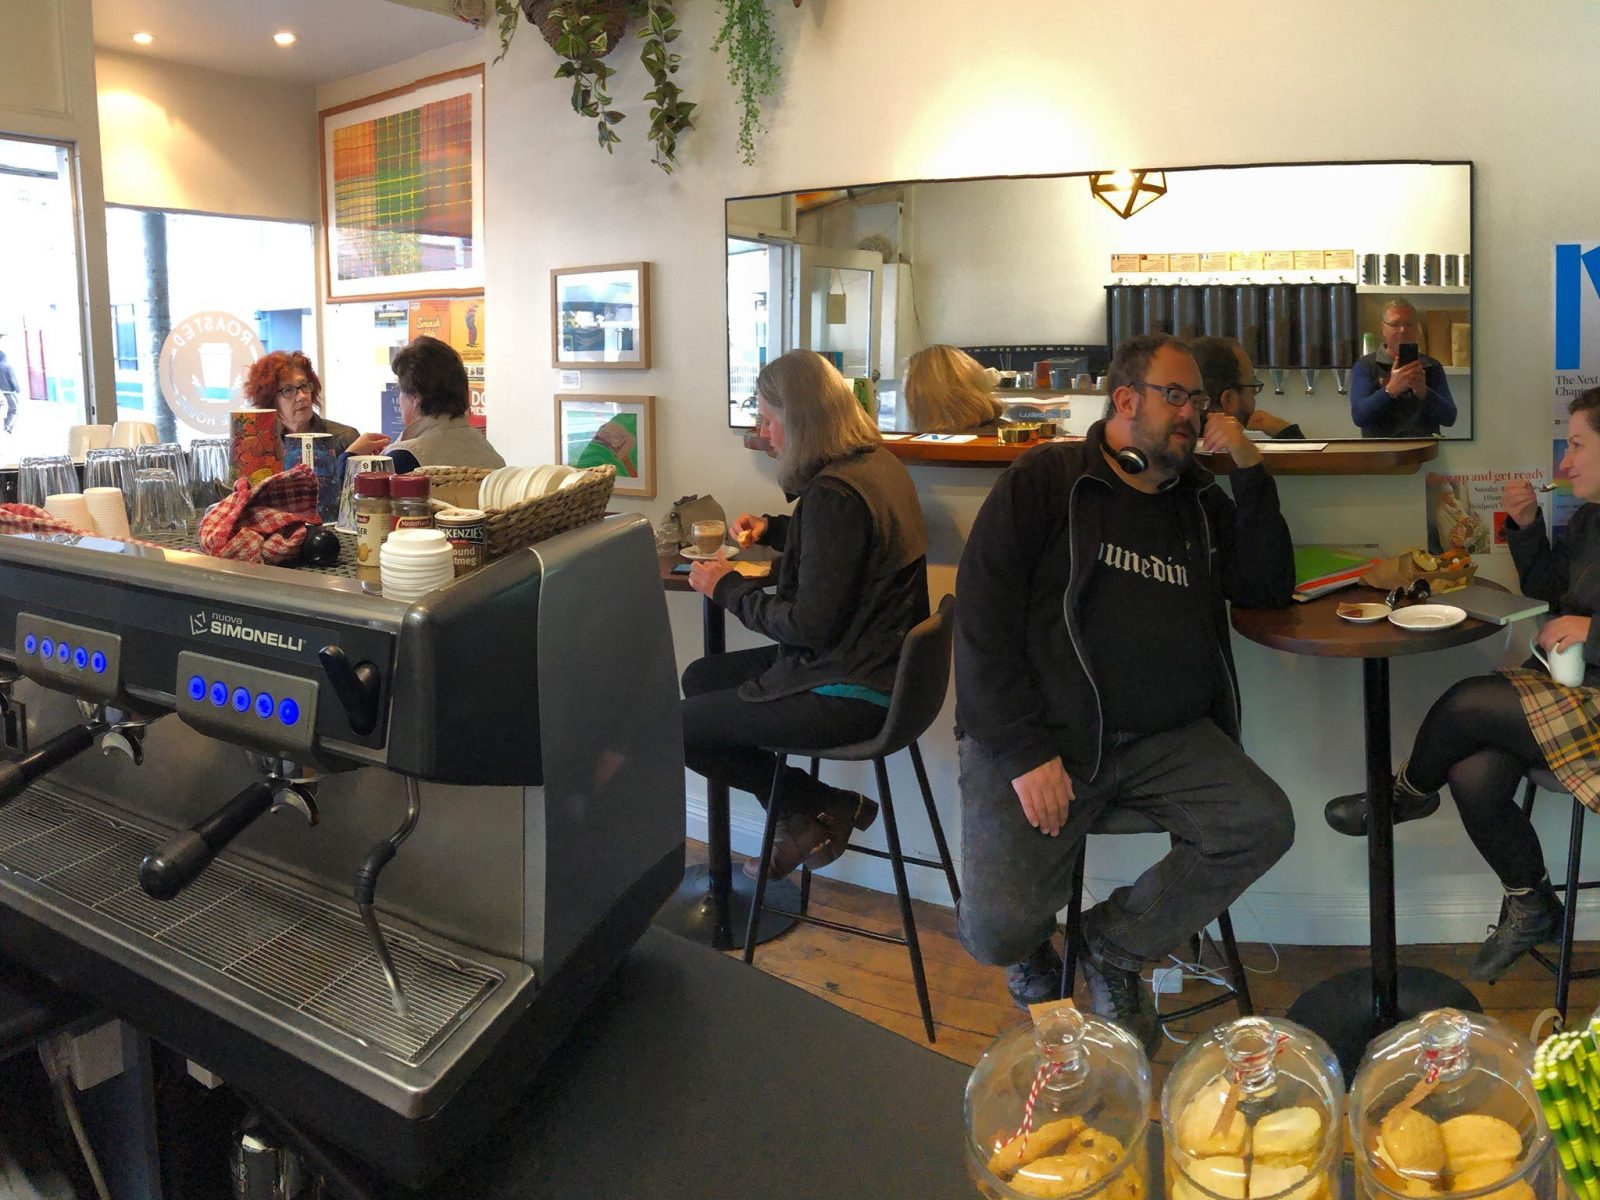 The inside view of Roasted Coffee House